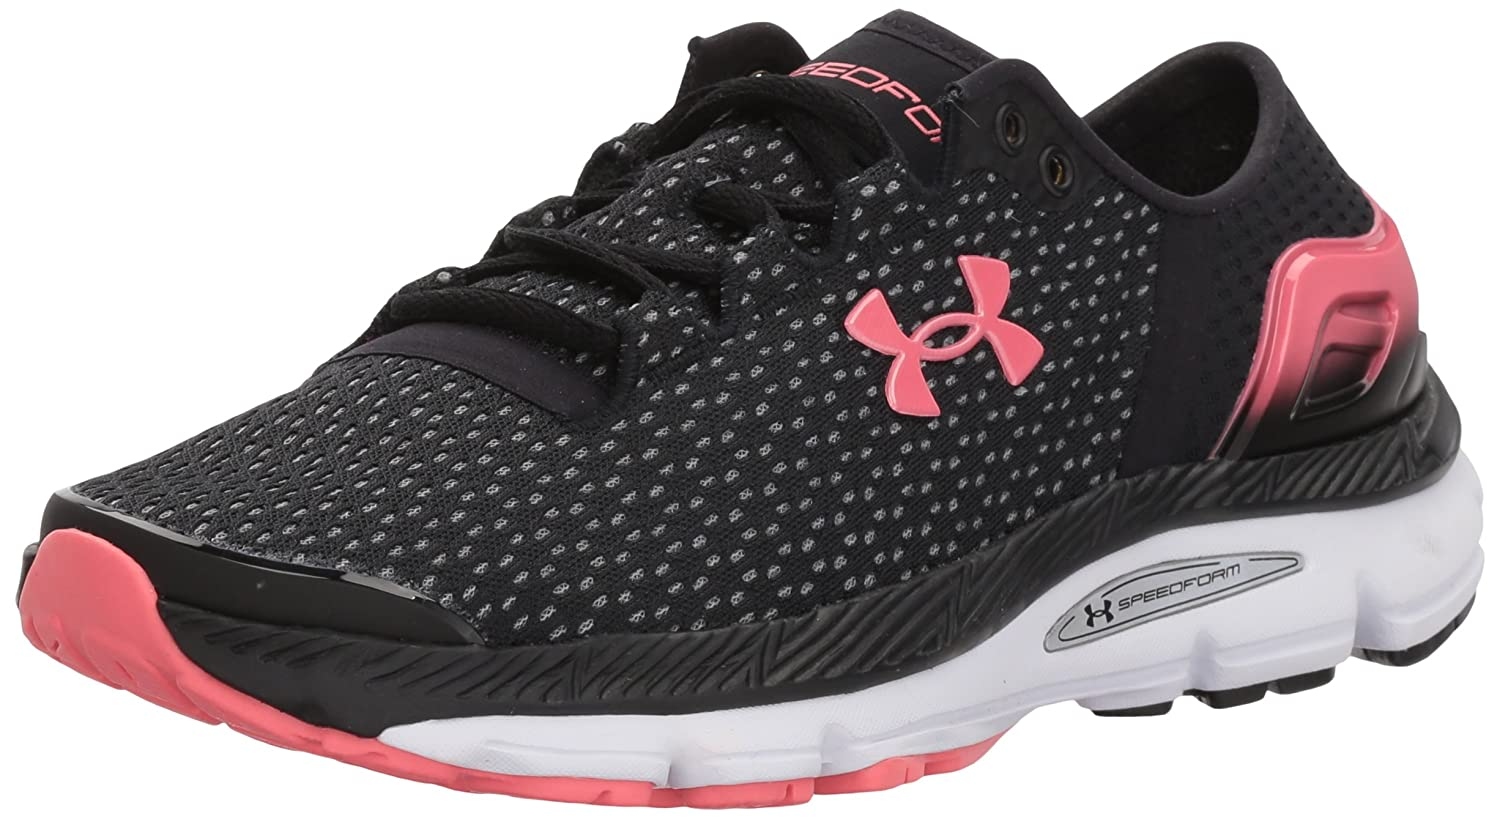 Under Armour Women's Speedform Intake 2 Running Shoe B071HMX1PB 10.5 M US|Black (001)/Steel